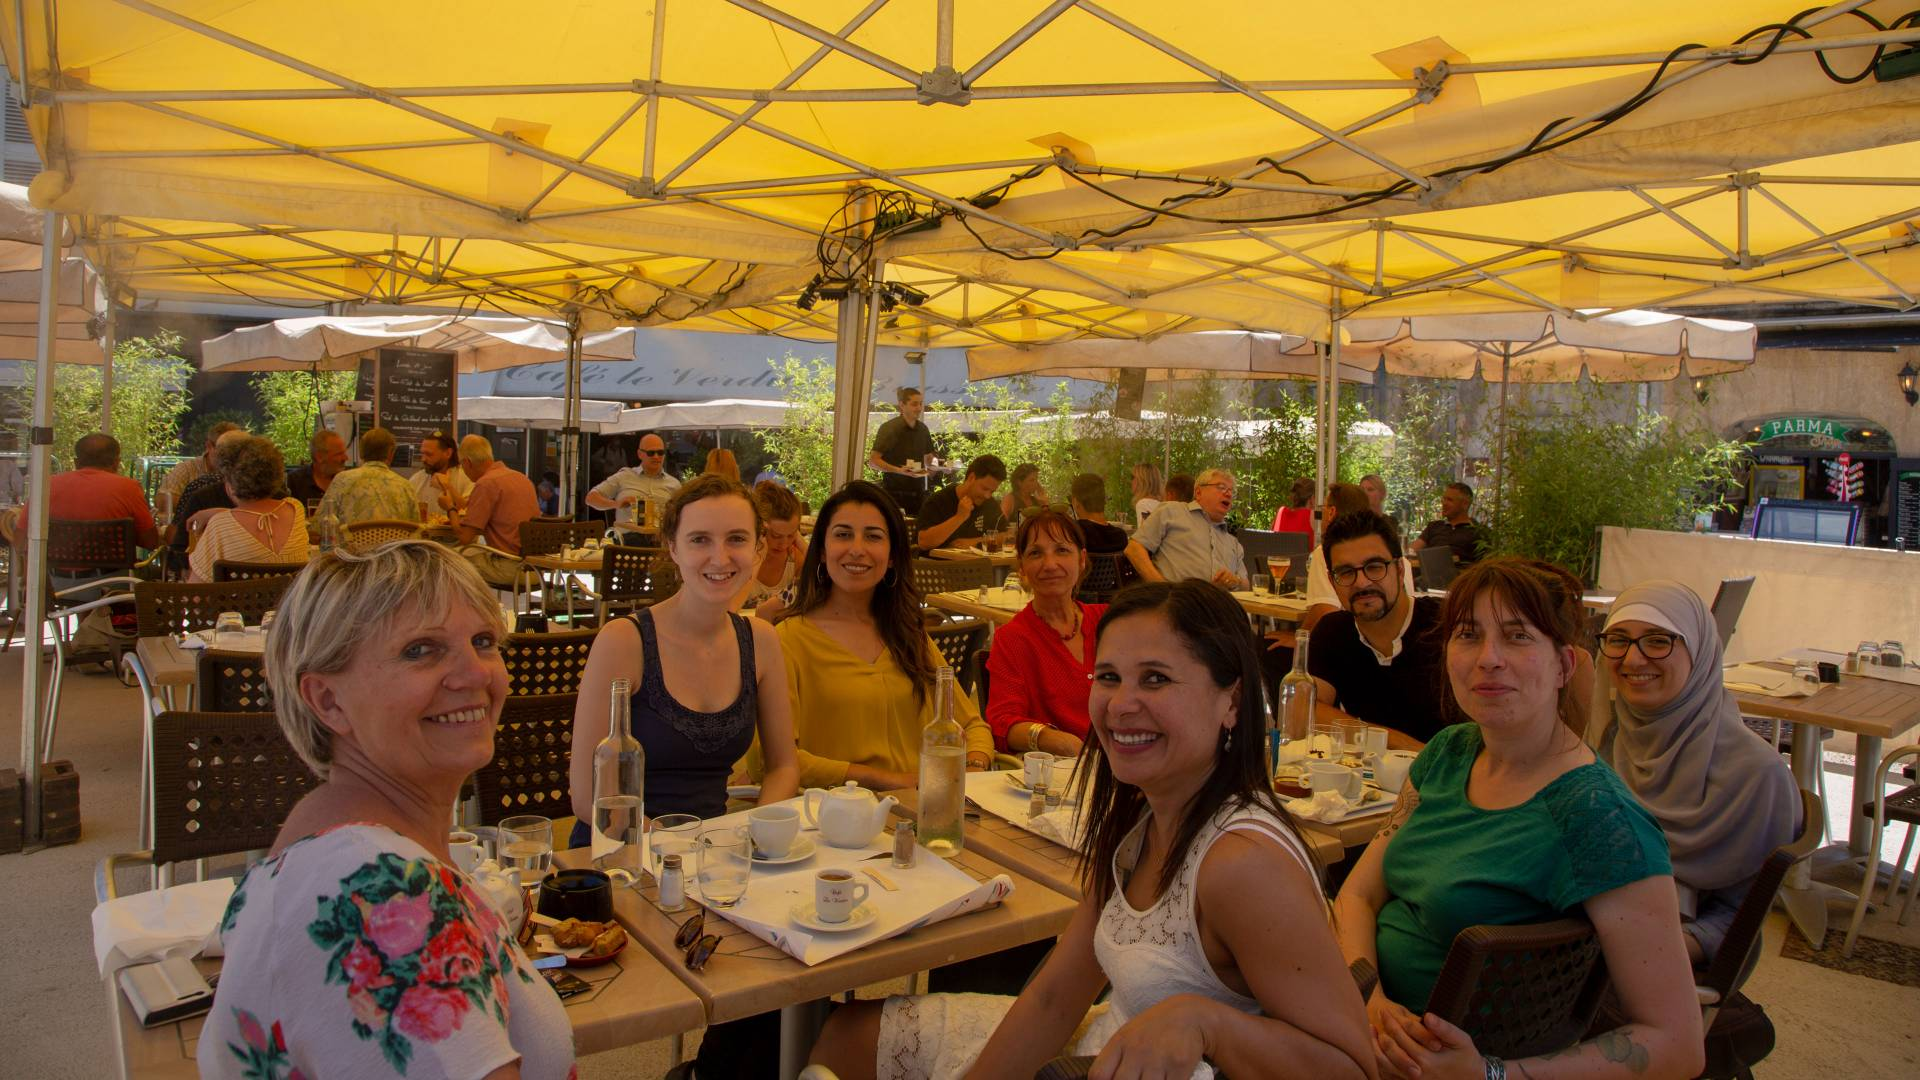 Faculty and graduate students sitting in outdoor cafe in France